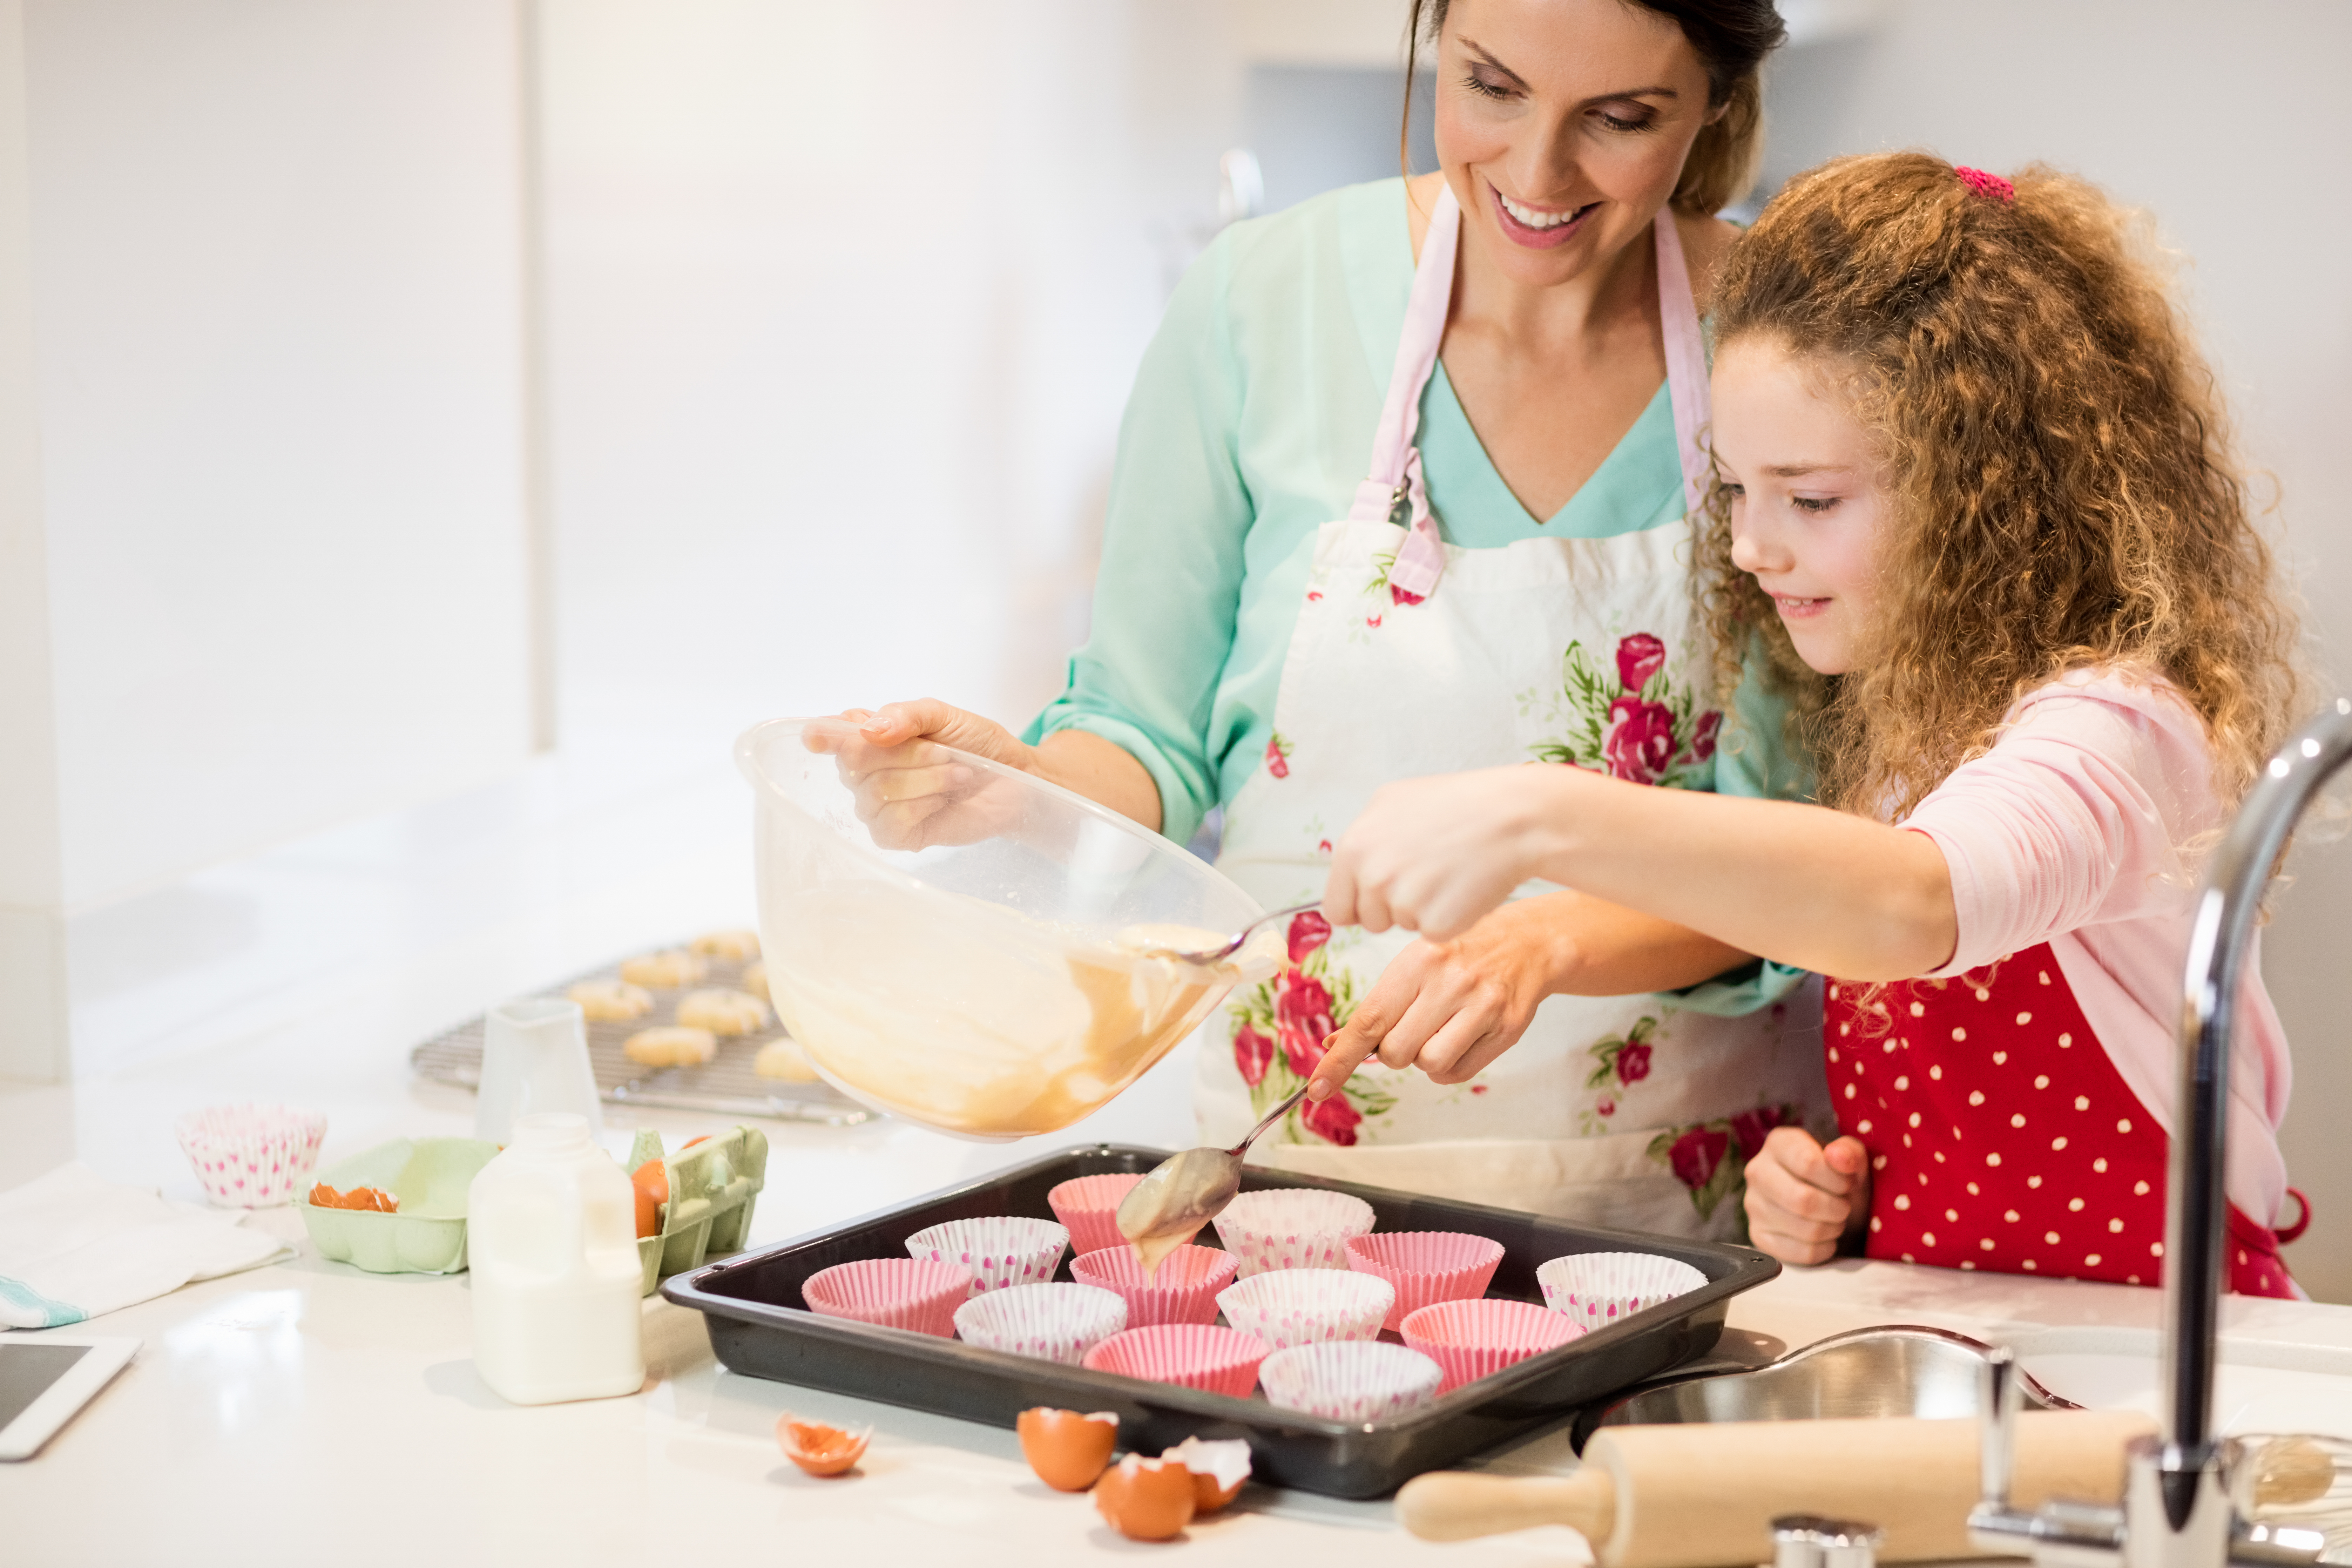 Mother and daughter preparing cupcake in kitchen